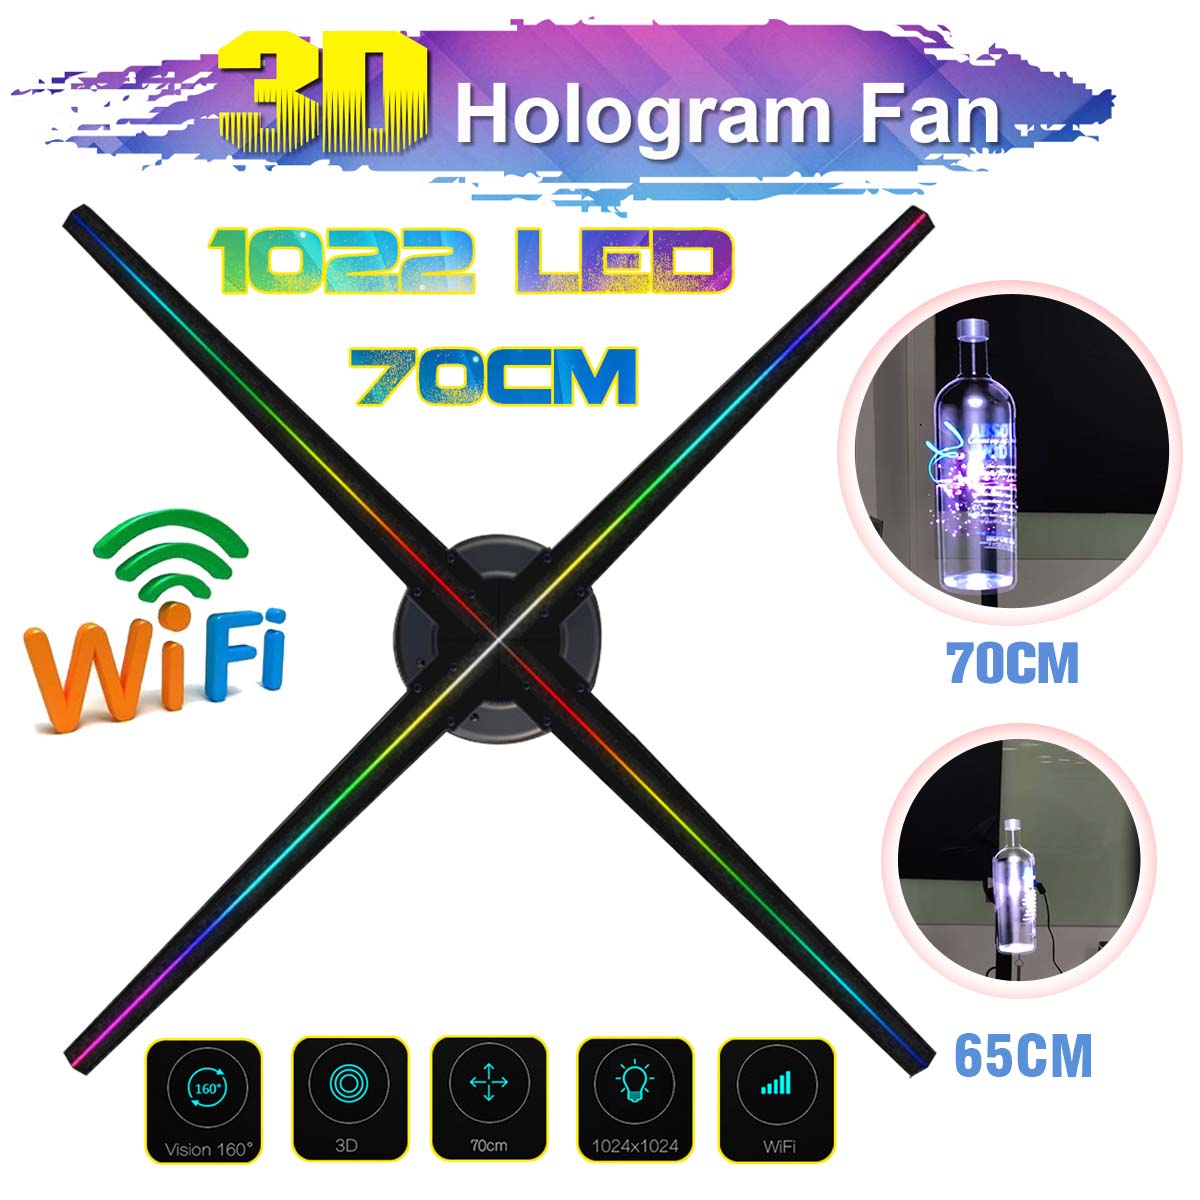 Upgraded 70cm Wifi 3D Holographic Projector Fan Hologram Player LED Video Display Fan Advertising Light APP Control Four AxilUpgraded 70cm Wifi 3D Holographic Projector Fan Hologram Player LED Video Display Fan Advertising Light APP Control Four Axil